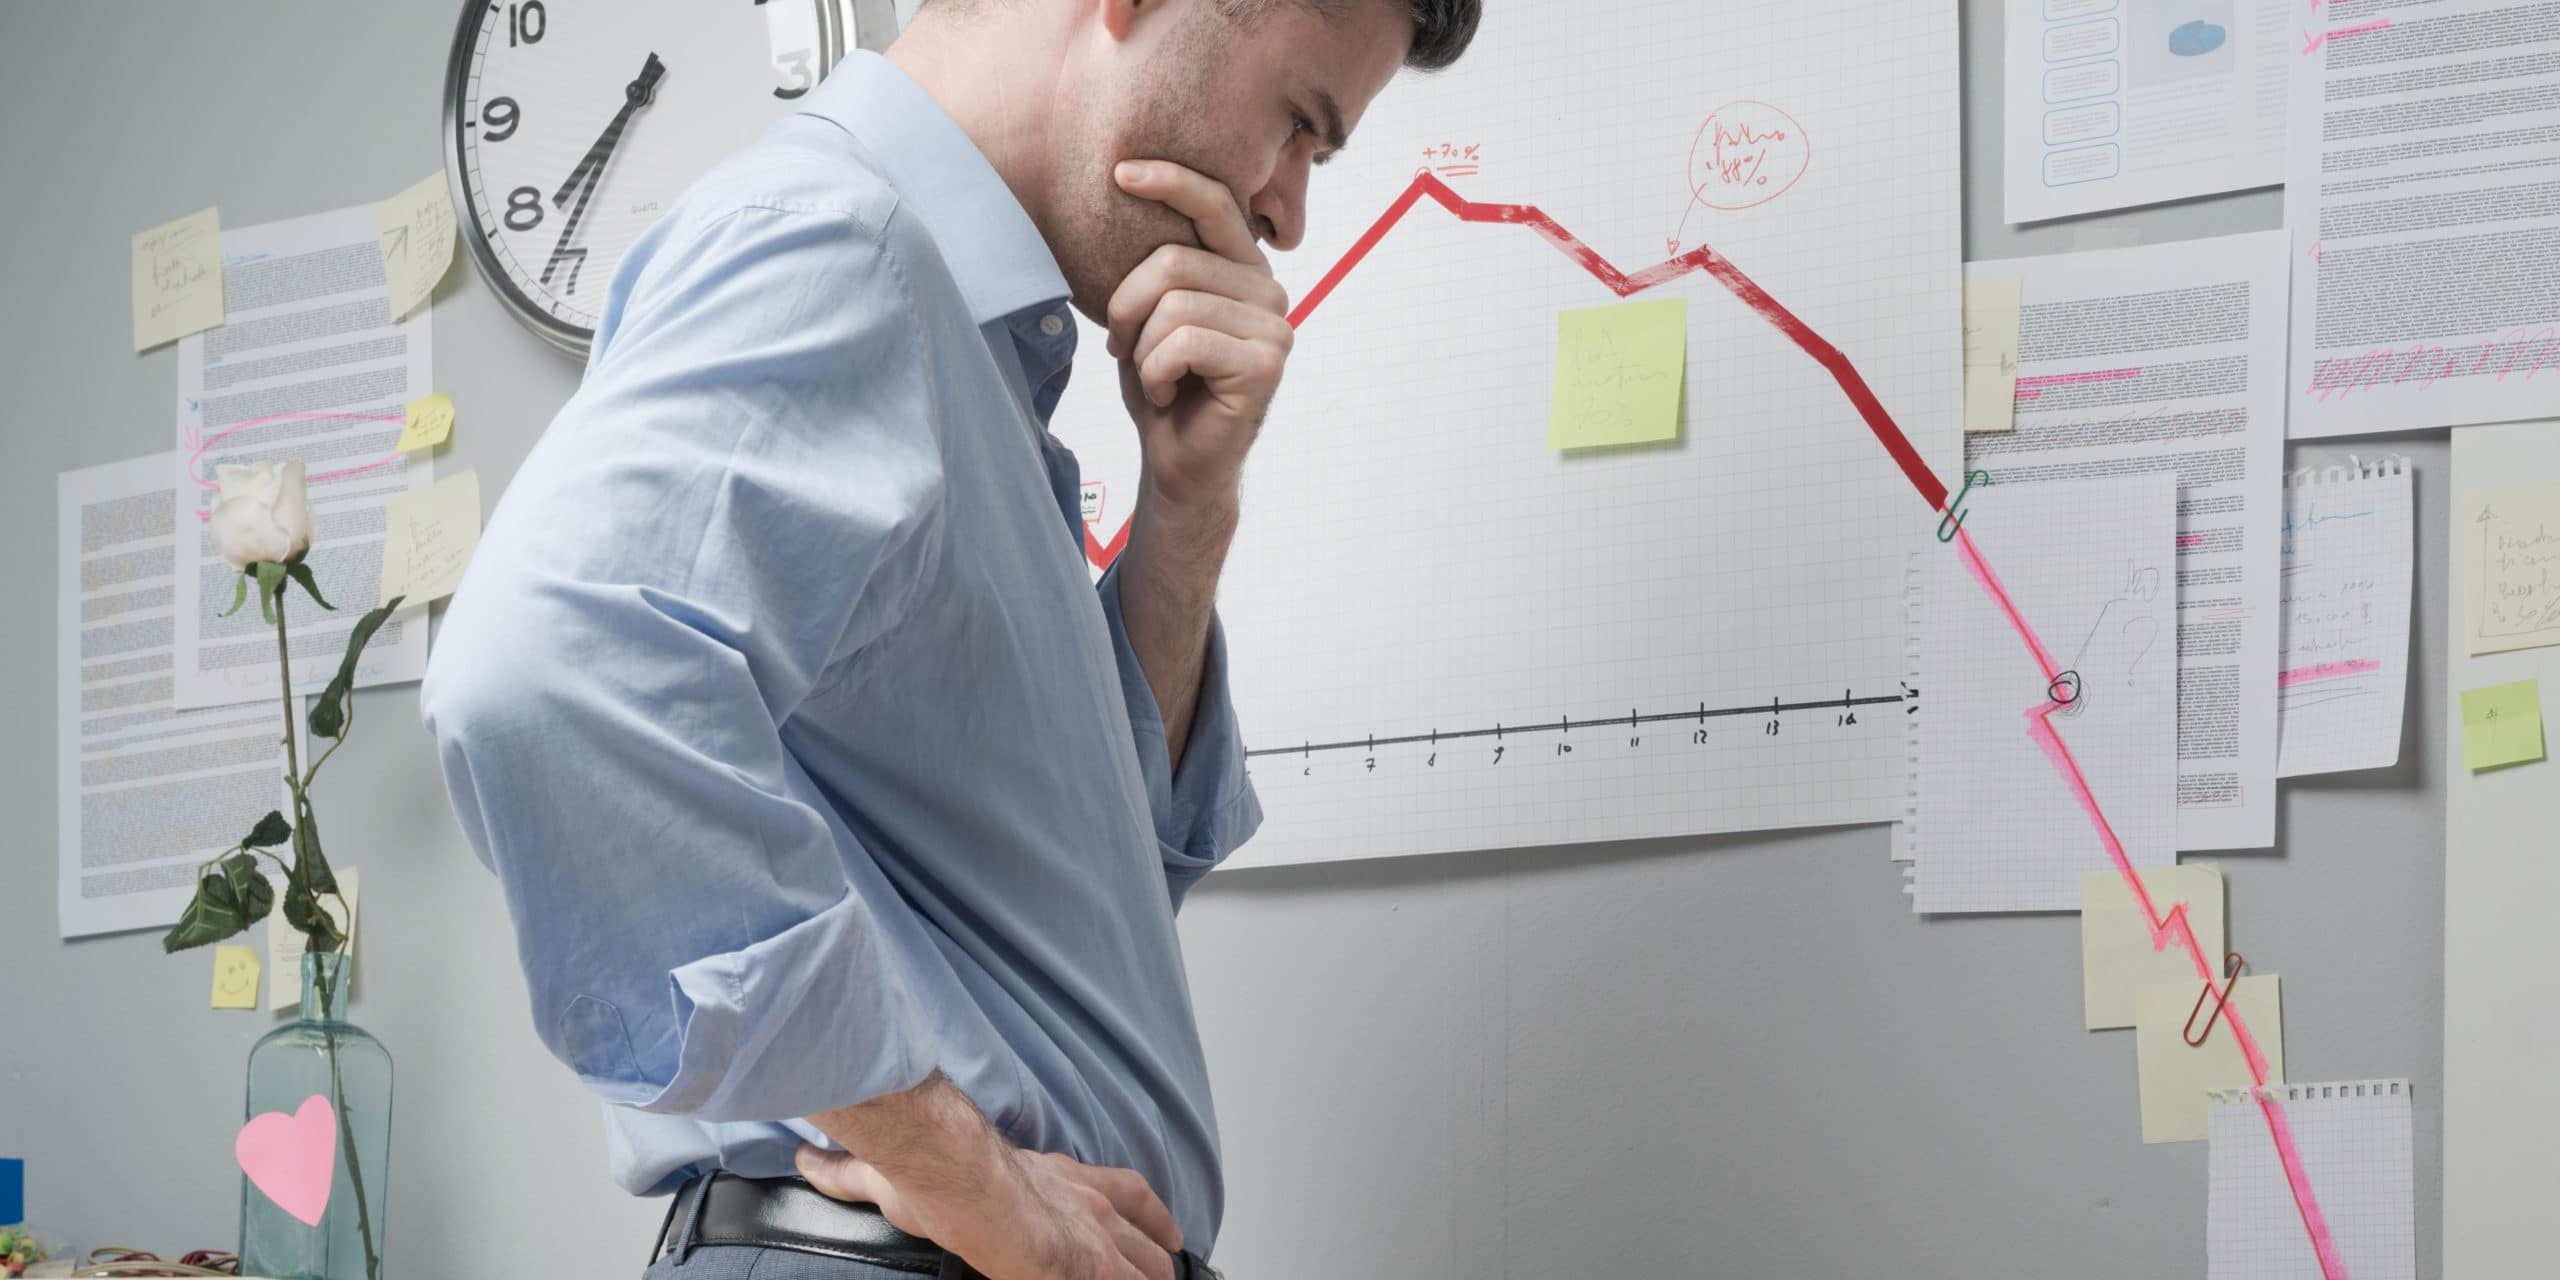 Concerned businessman at work looking at negative business chart with arrow going downwards.